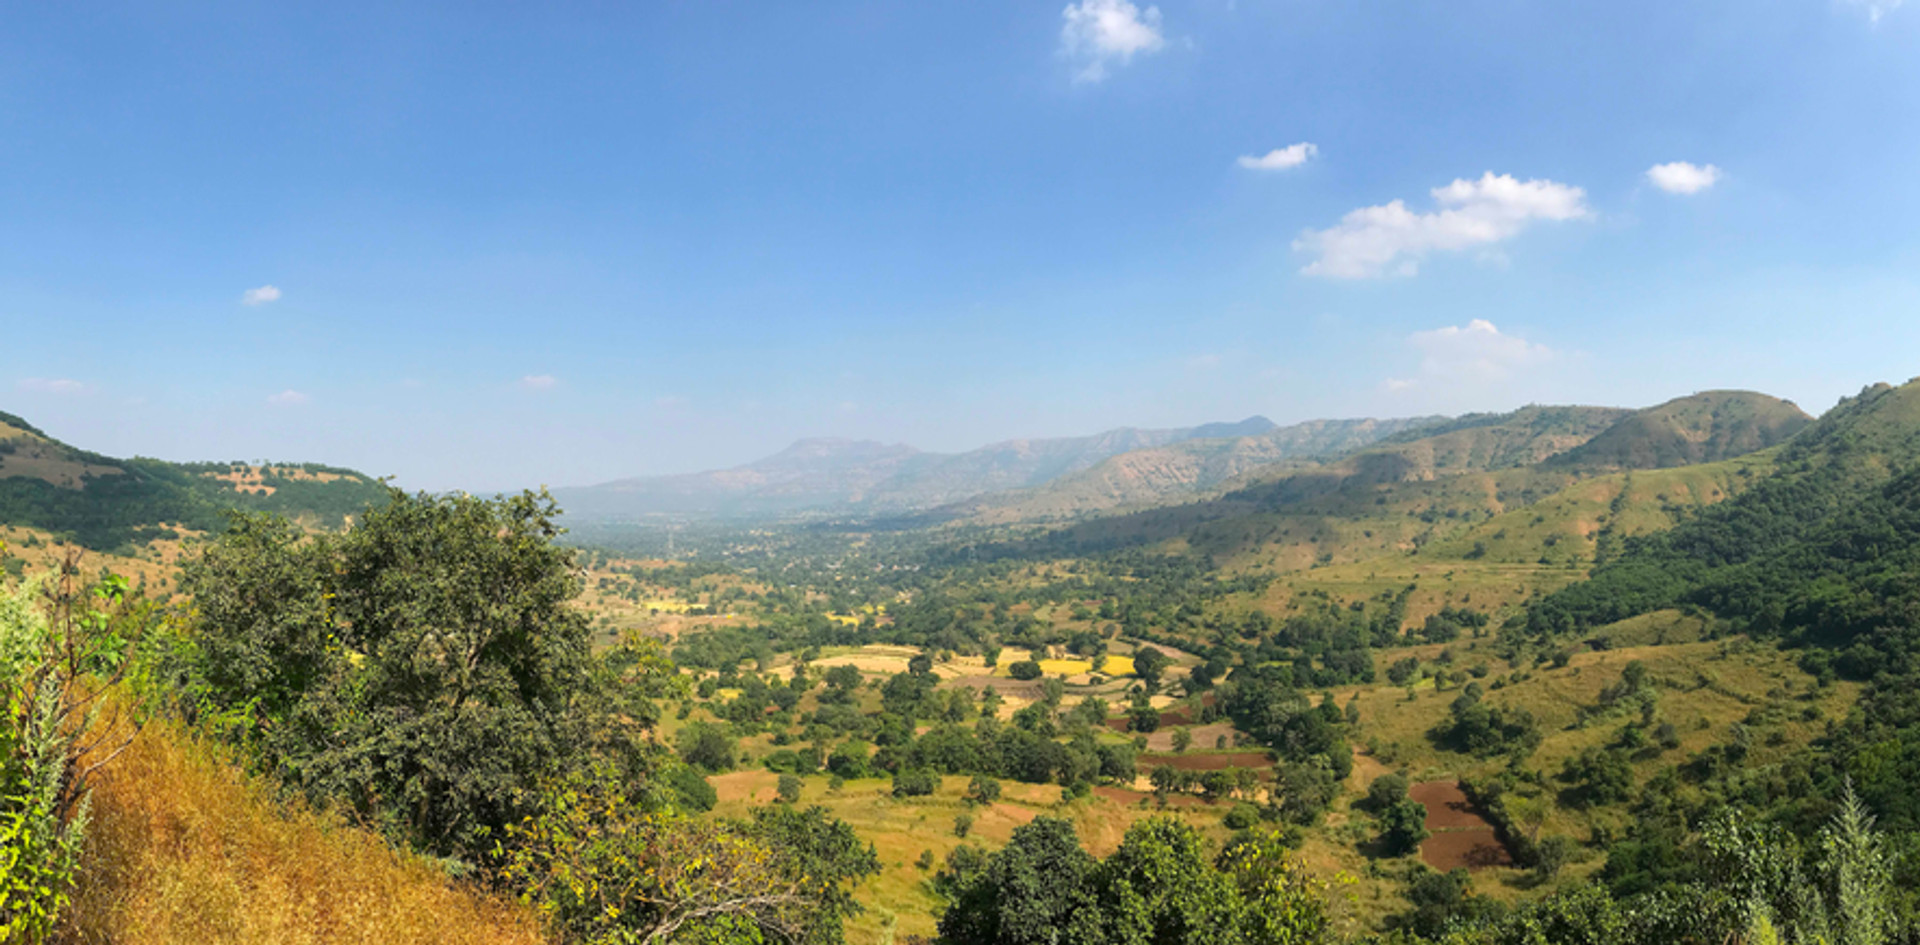 PANORAMA-LANDSCAPE-WIDE-SERENE-VALLEY-FI